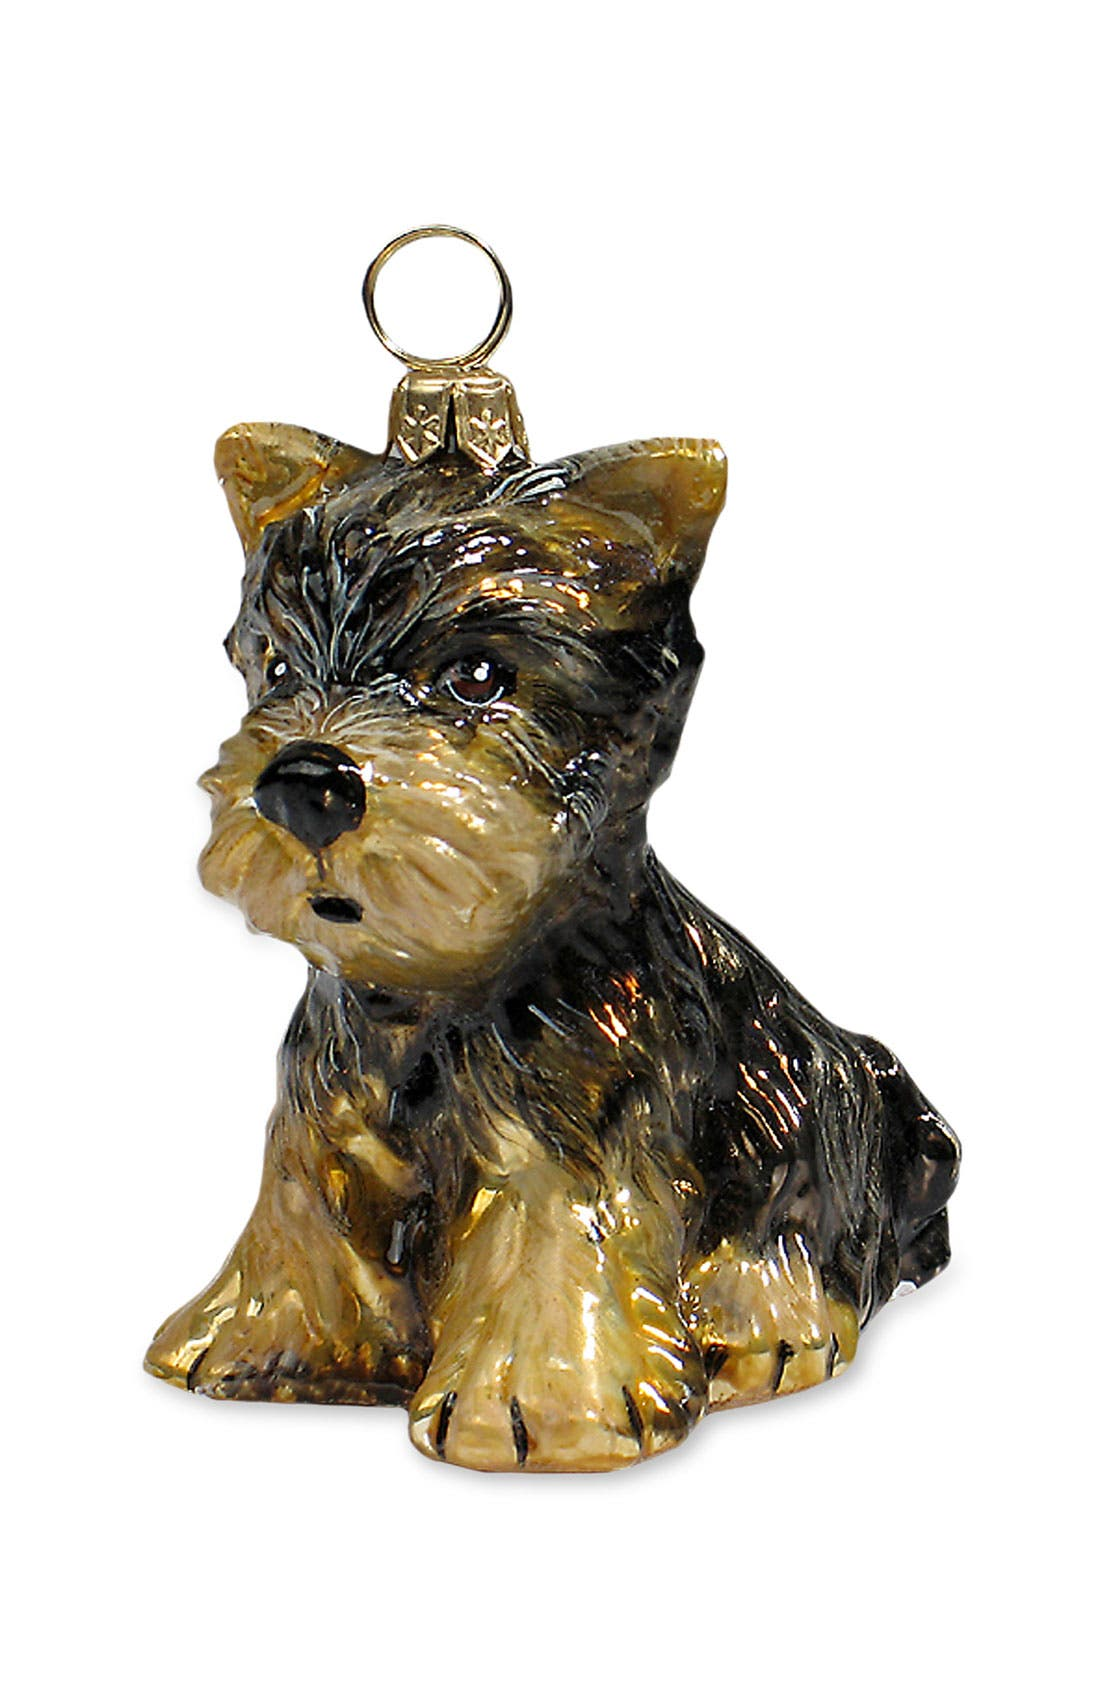 'Yorkie Puppy' Dog Ornament,                         Main,                         color, Yorkshire Terrier Puppy